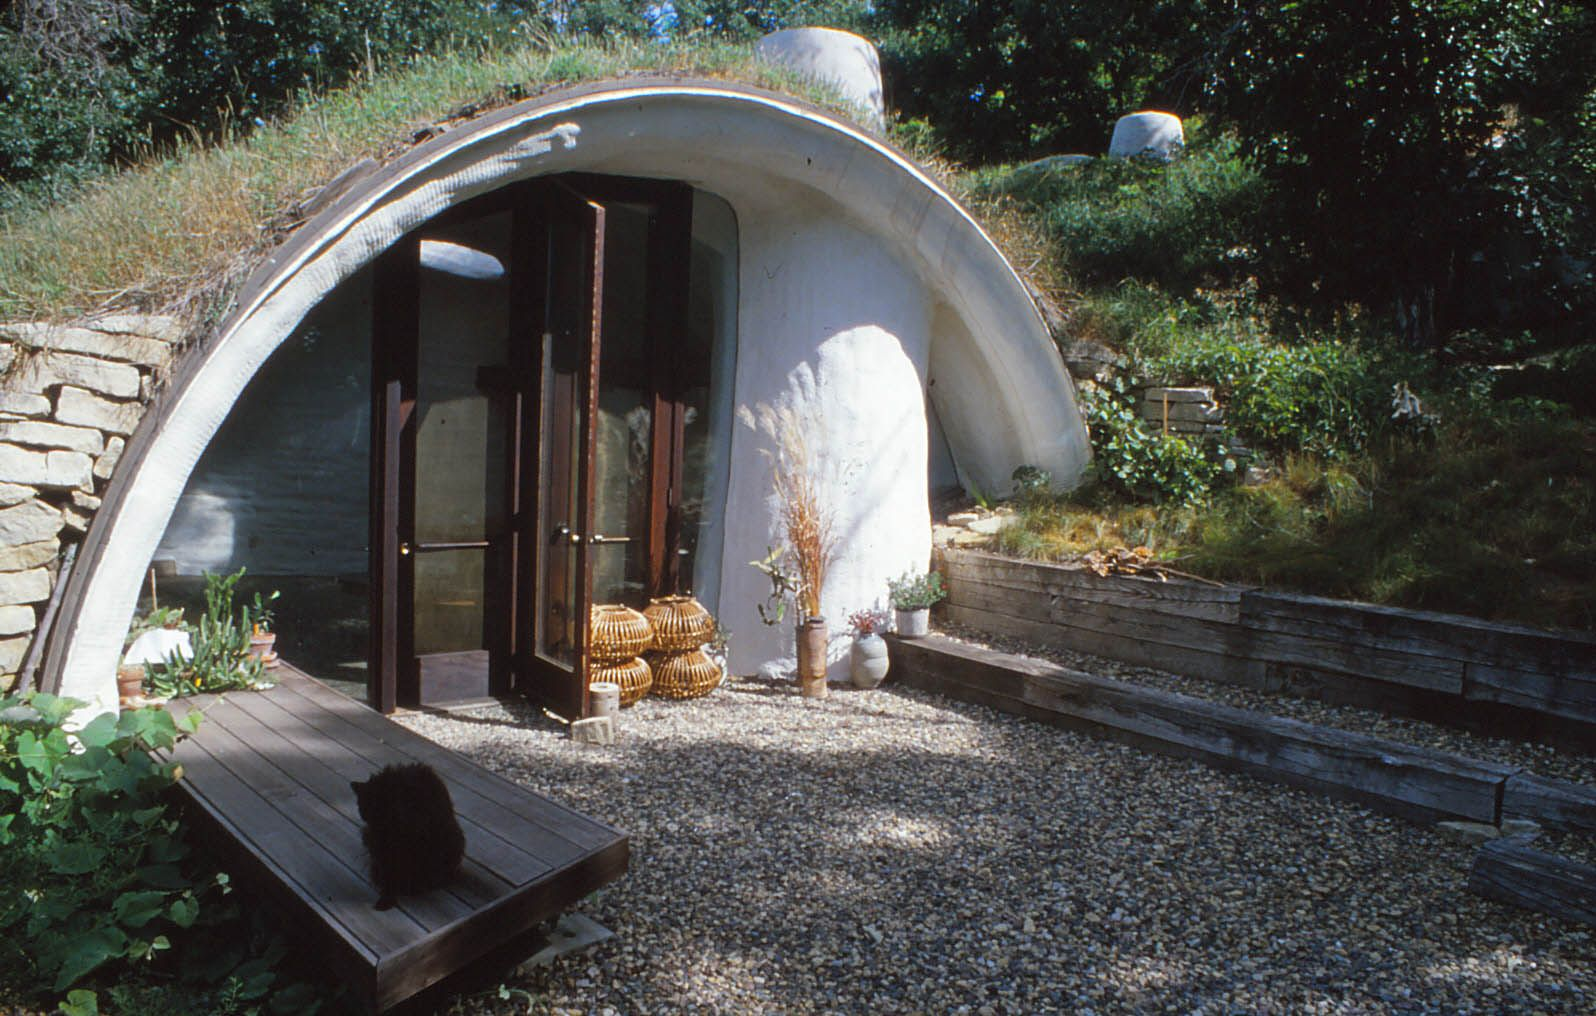 Entryway to an earth-sheltered dome house